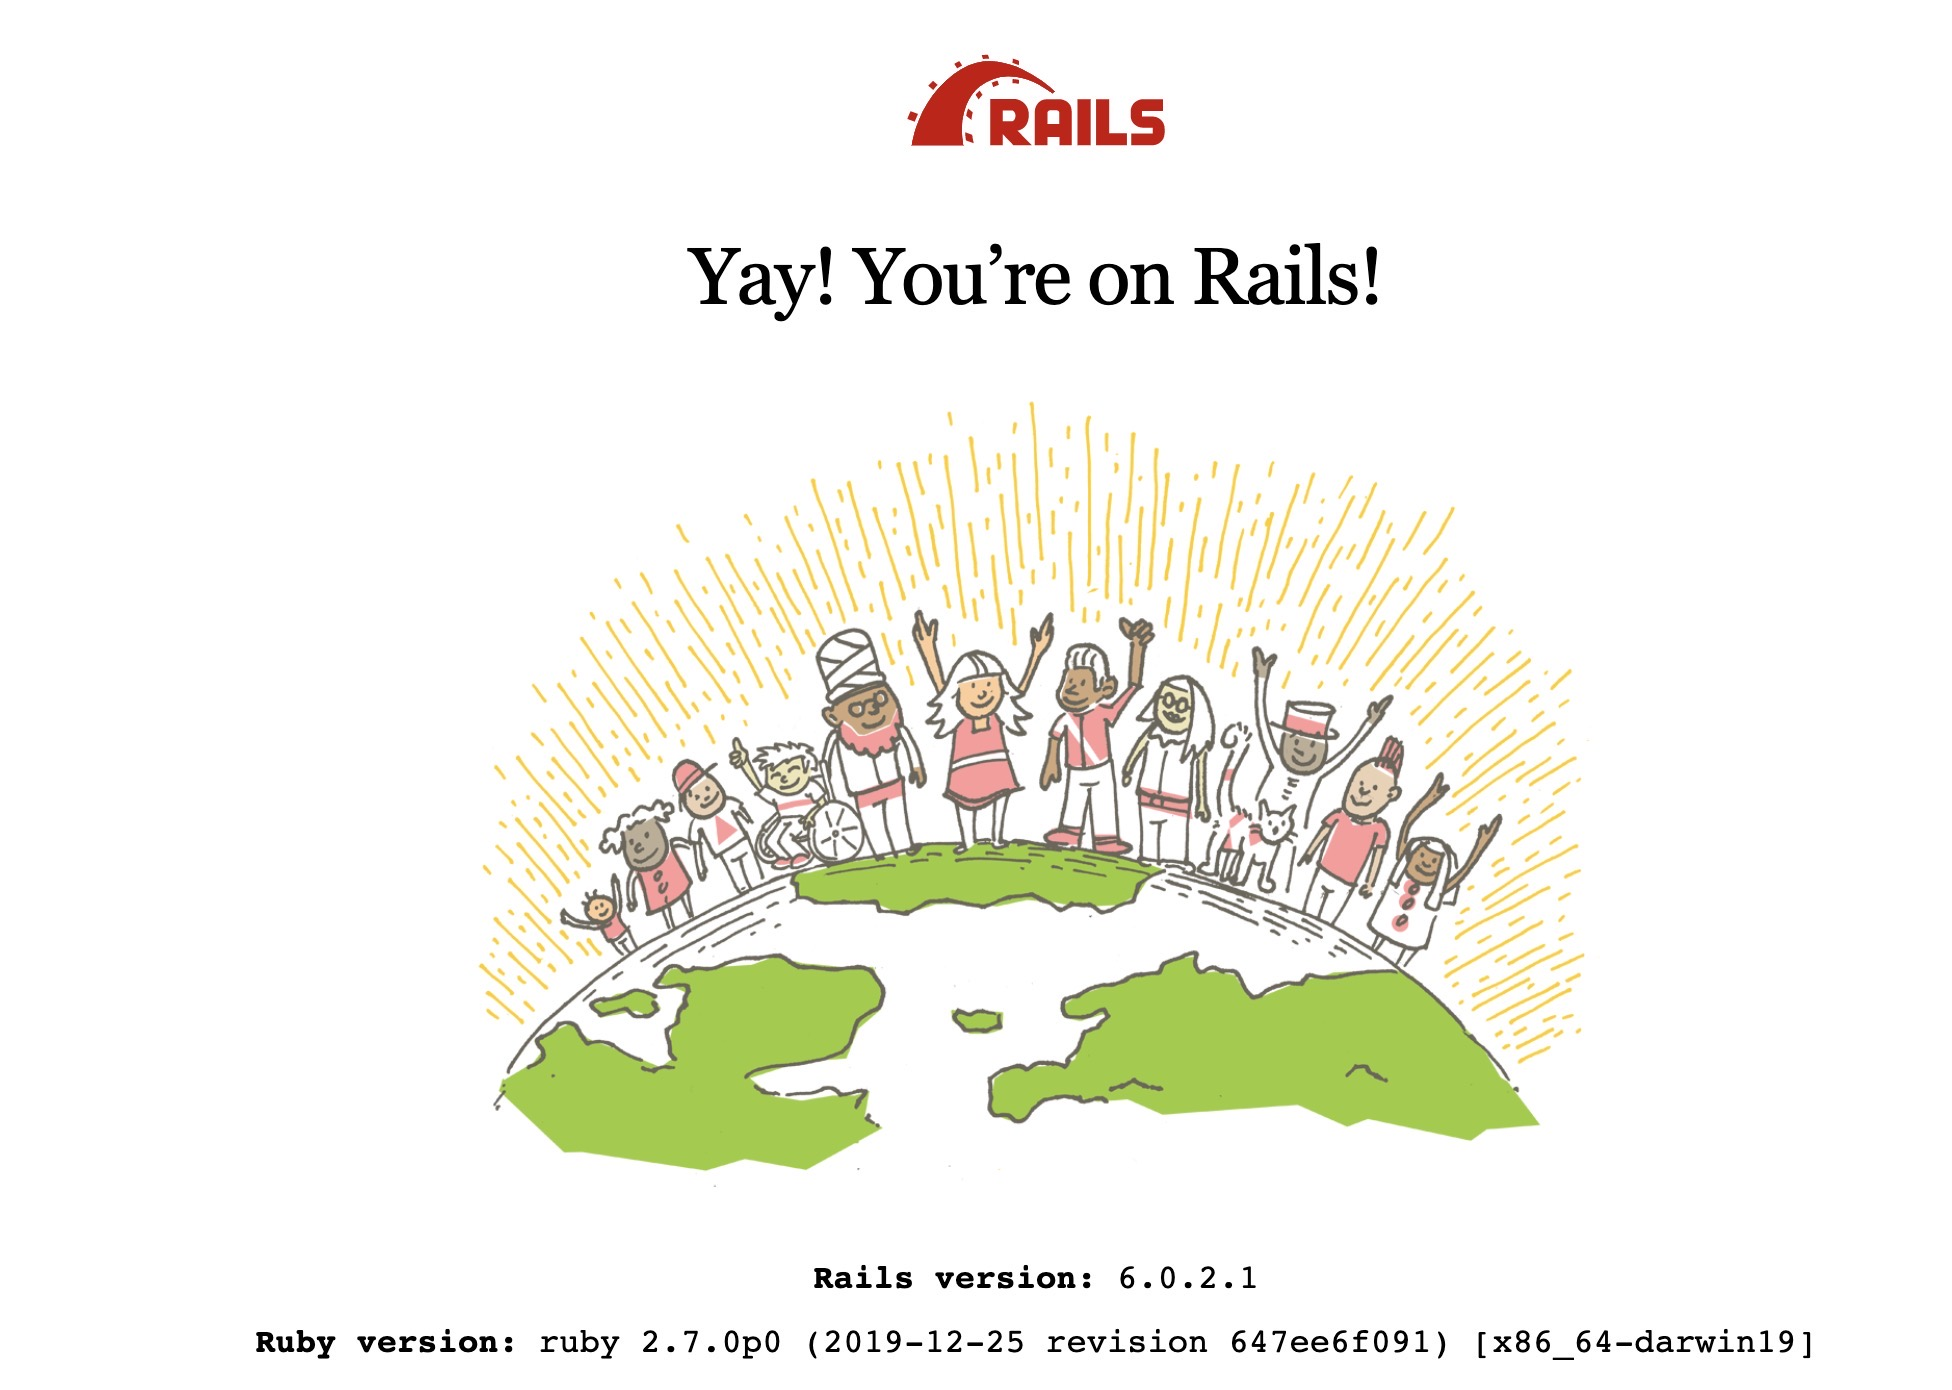 Ruby on Rails result of running the server